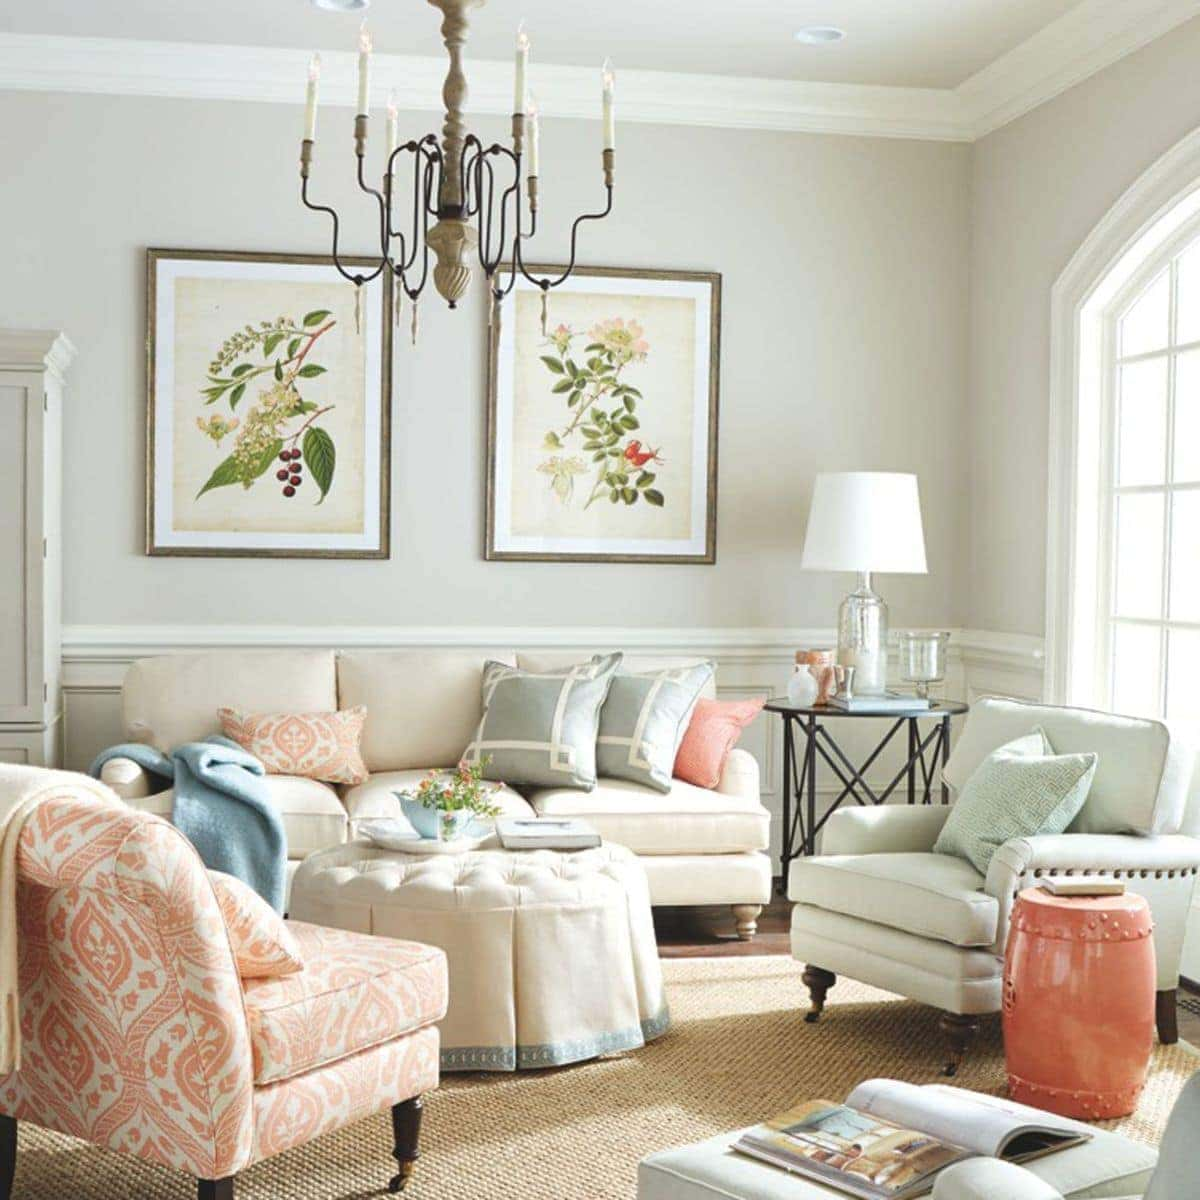 My dream home julie blanner entertaining home design for Living room decorating ideas neutral colors